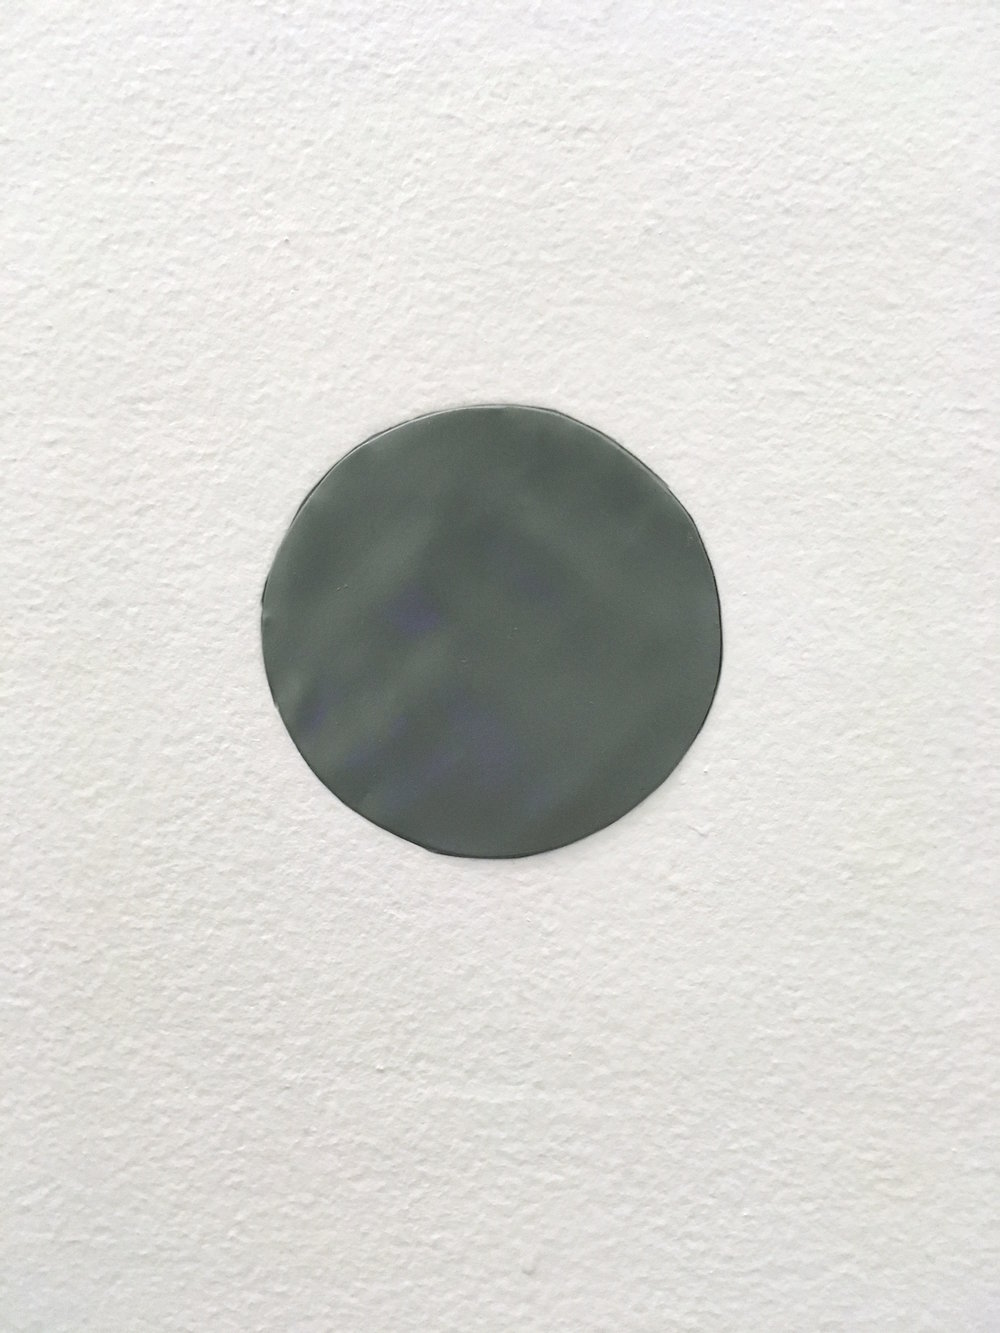 This Corner, 2017 detail (circle) Trigger, New MuseumNY